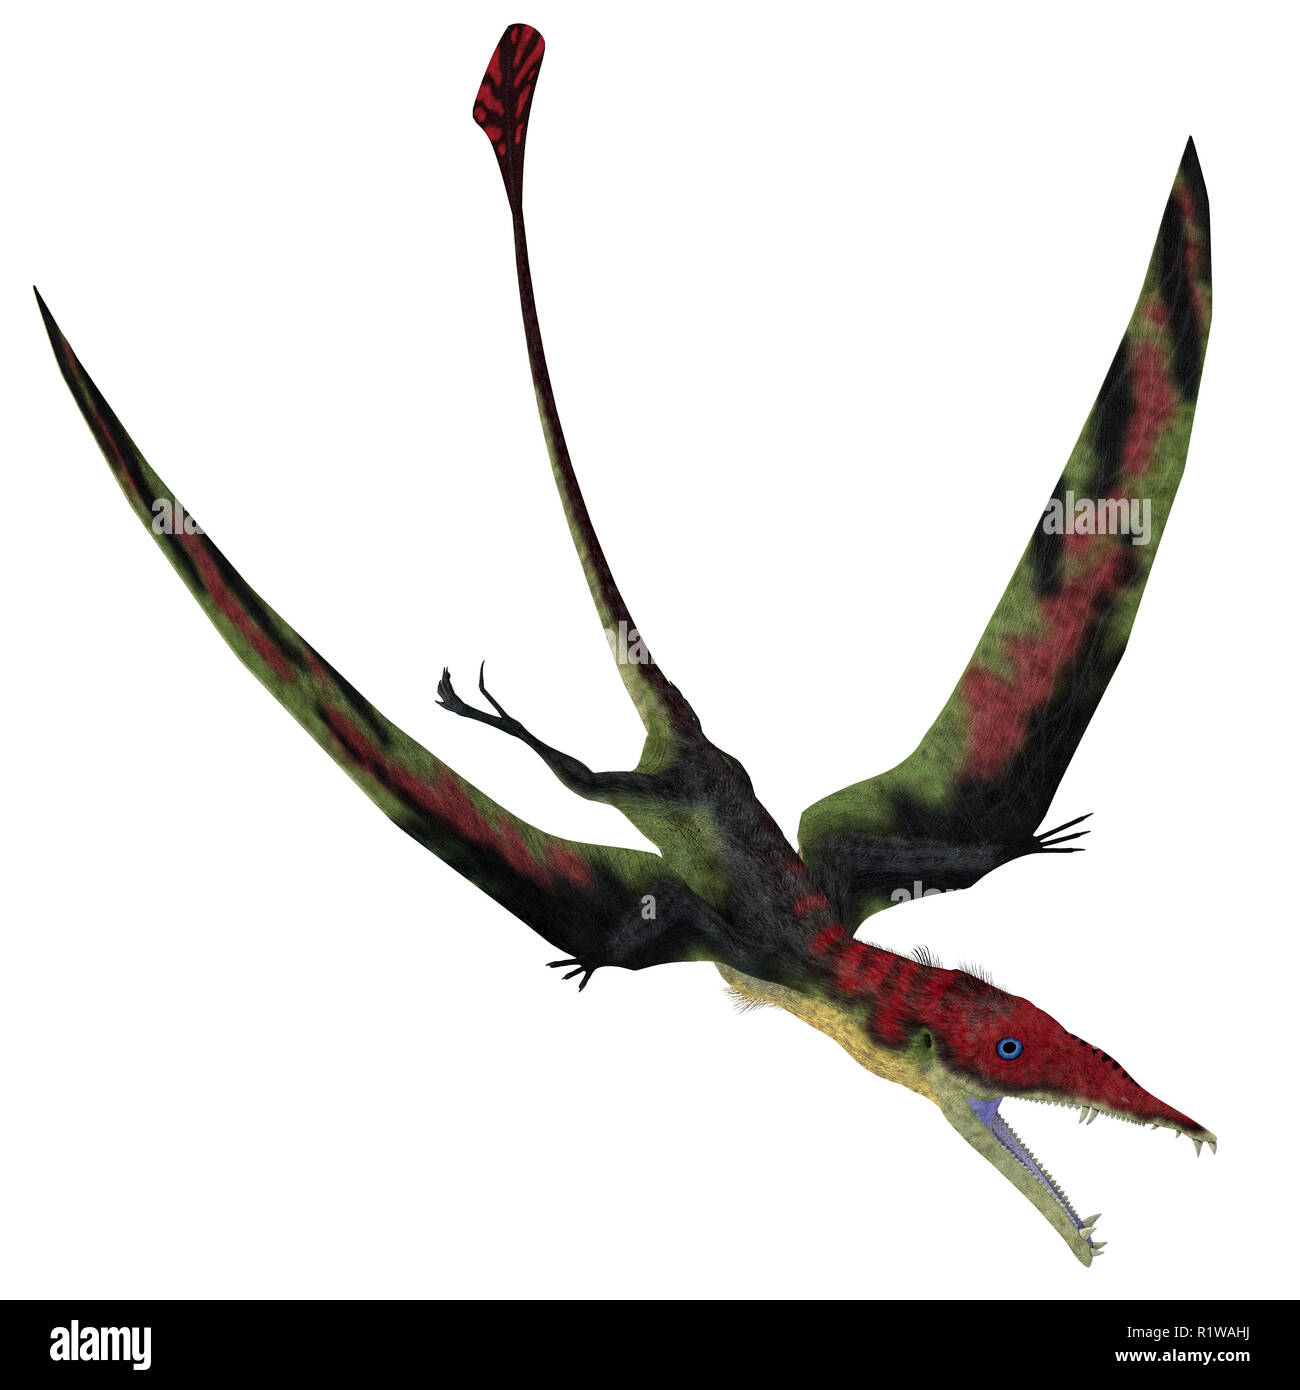 Eudimorphodon Pterosaur Diving - Eudimorphodon was a carnivorous Pterosaur bird that lived in Italy during the Triassic Period. - Stock Image